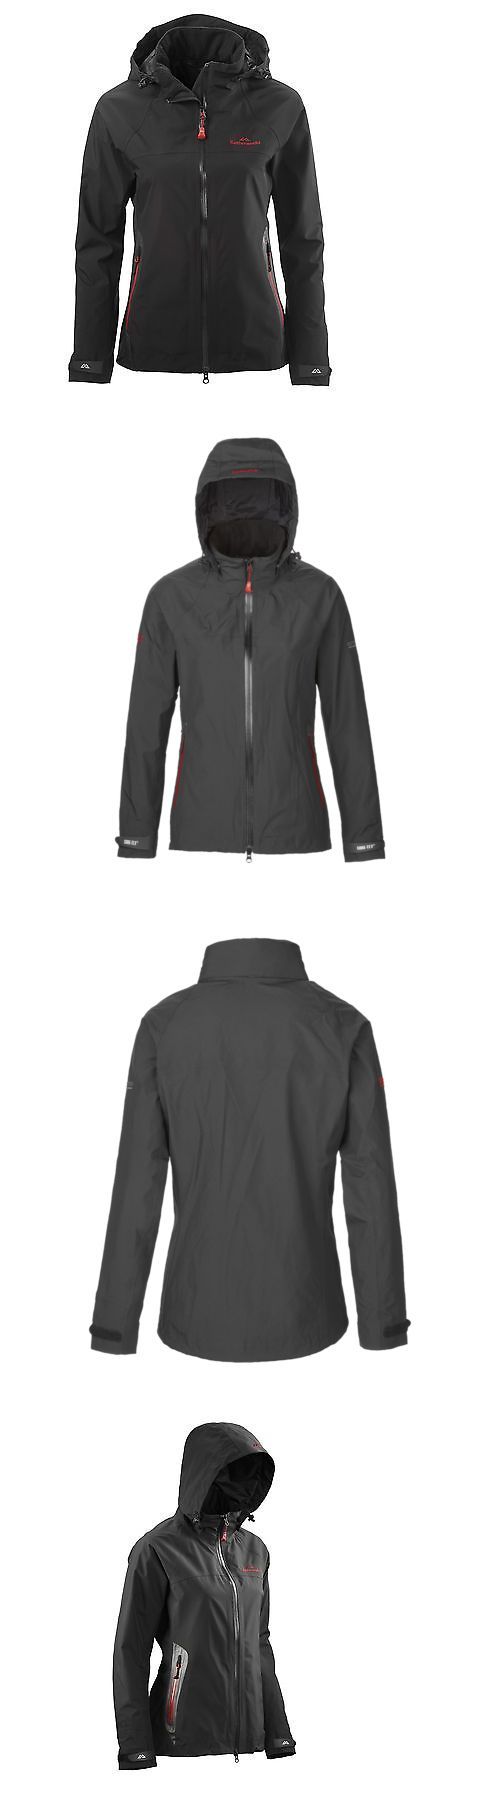 Coats and Jackets 181365: Kathmandu Blackburn Womens Gore Tex 2 Layer Waterproof Hooded Jacket Black BUY IT NOW ONLY: $299.99